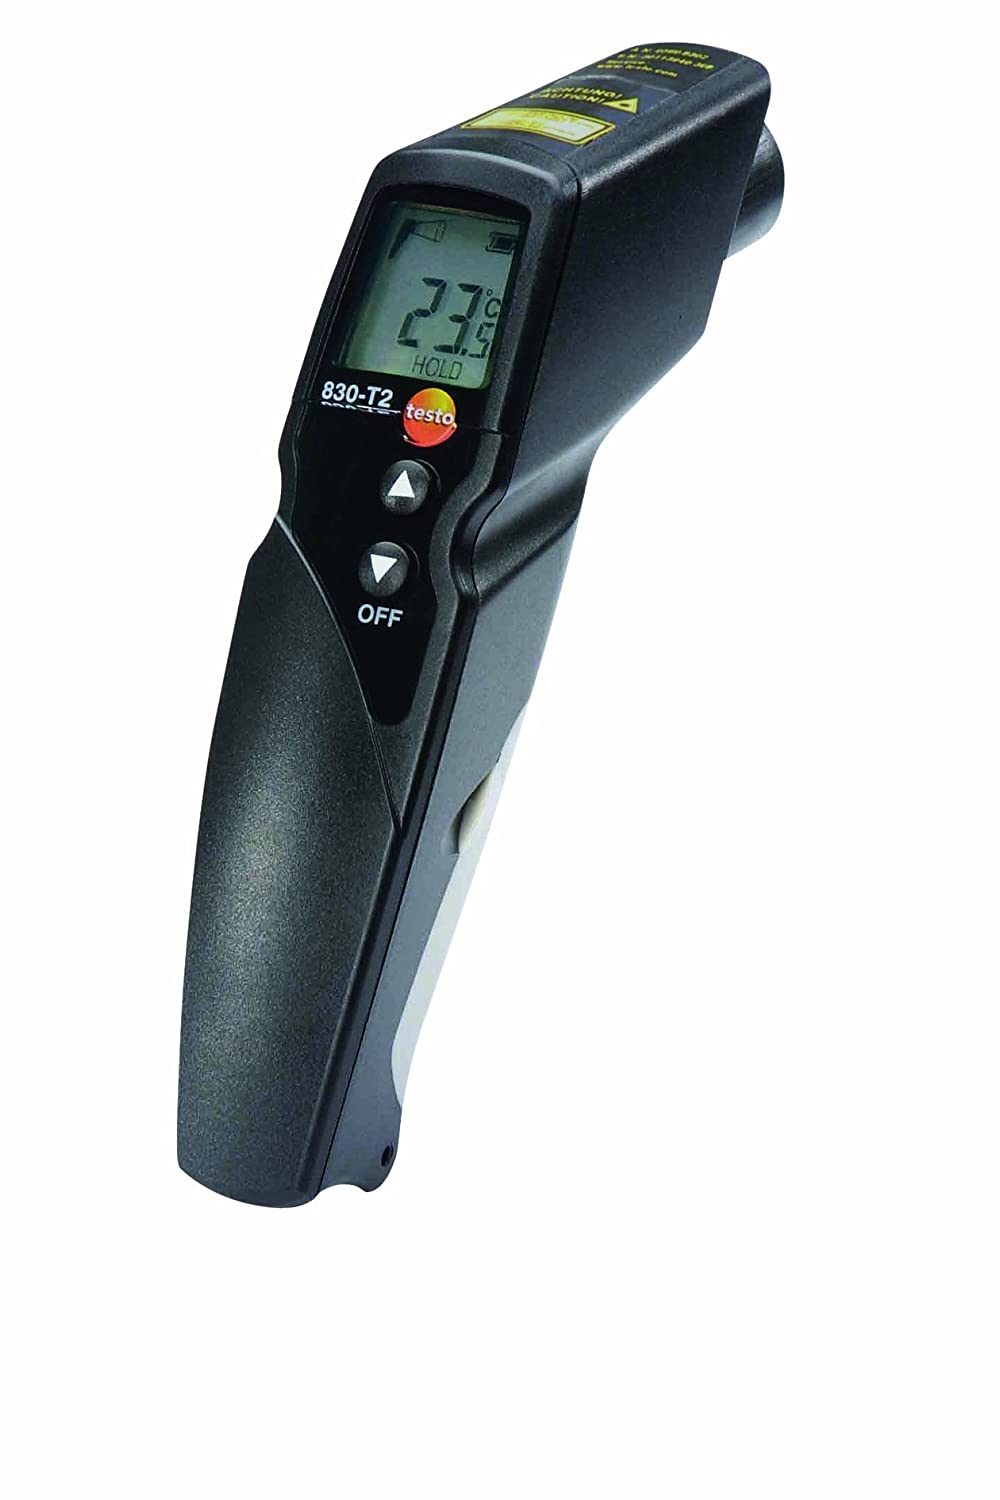 Infrared Thermometer testo 830-T1